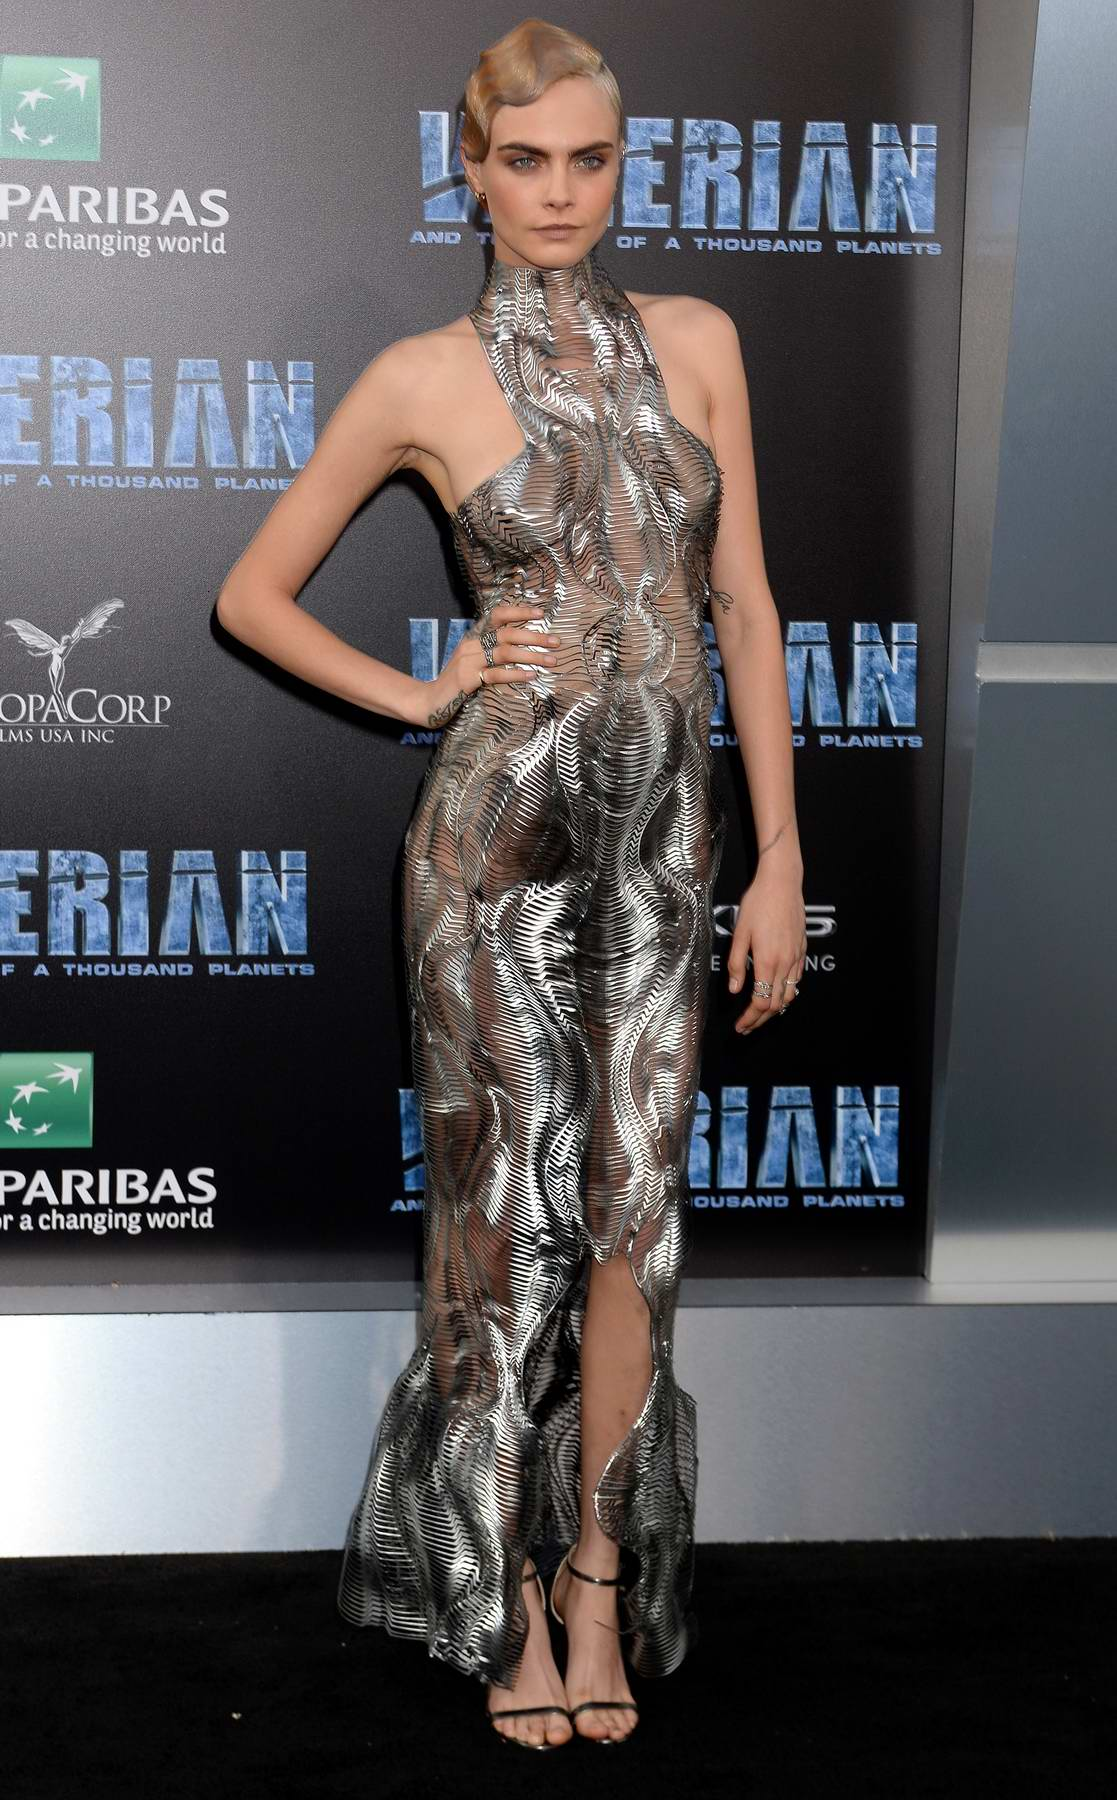 Cara Delevingne at the Valerian and the City of a Thousand Planets Premiere in Hollywood